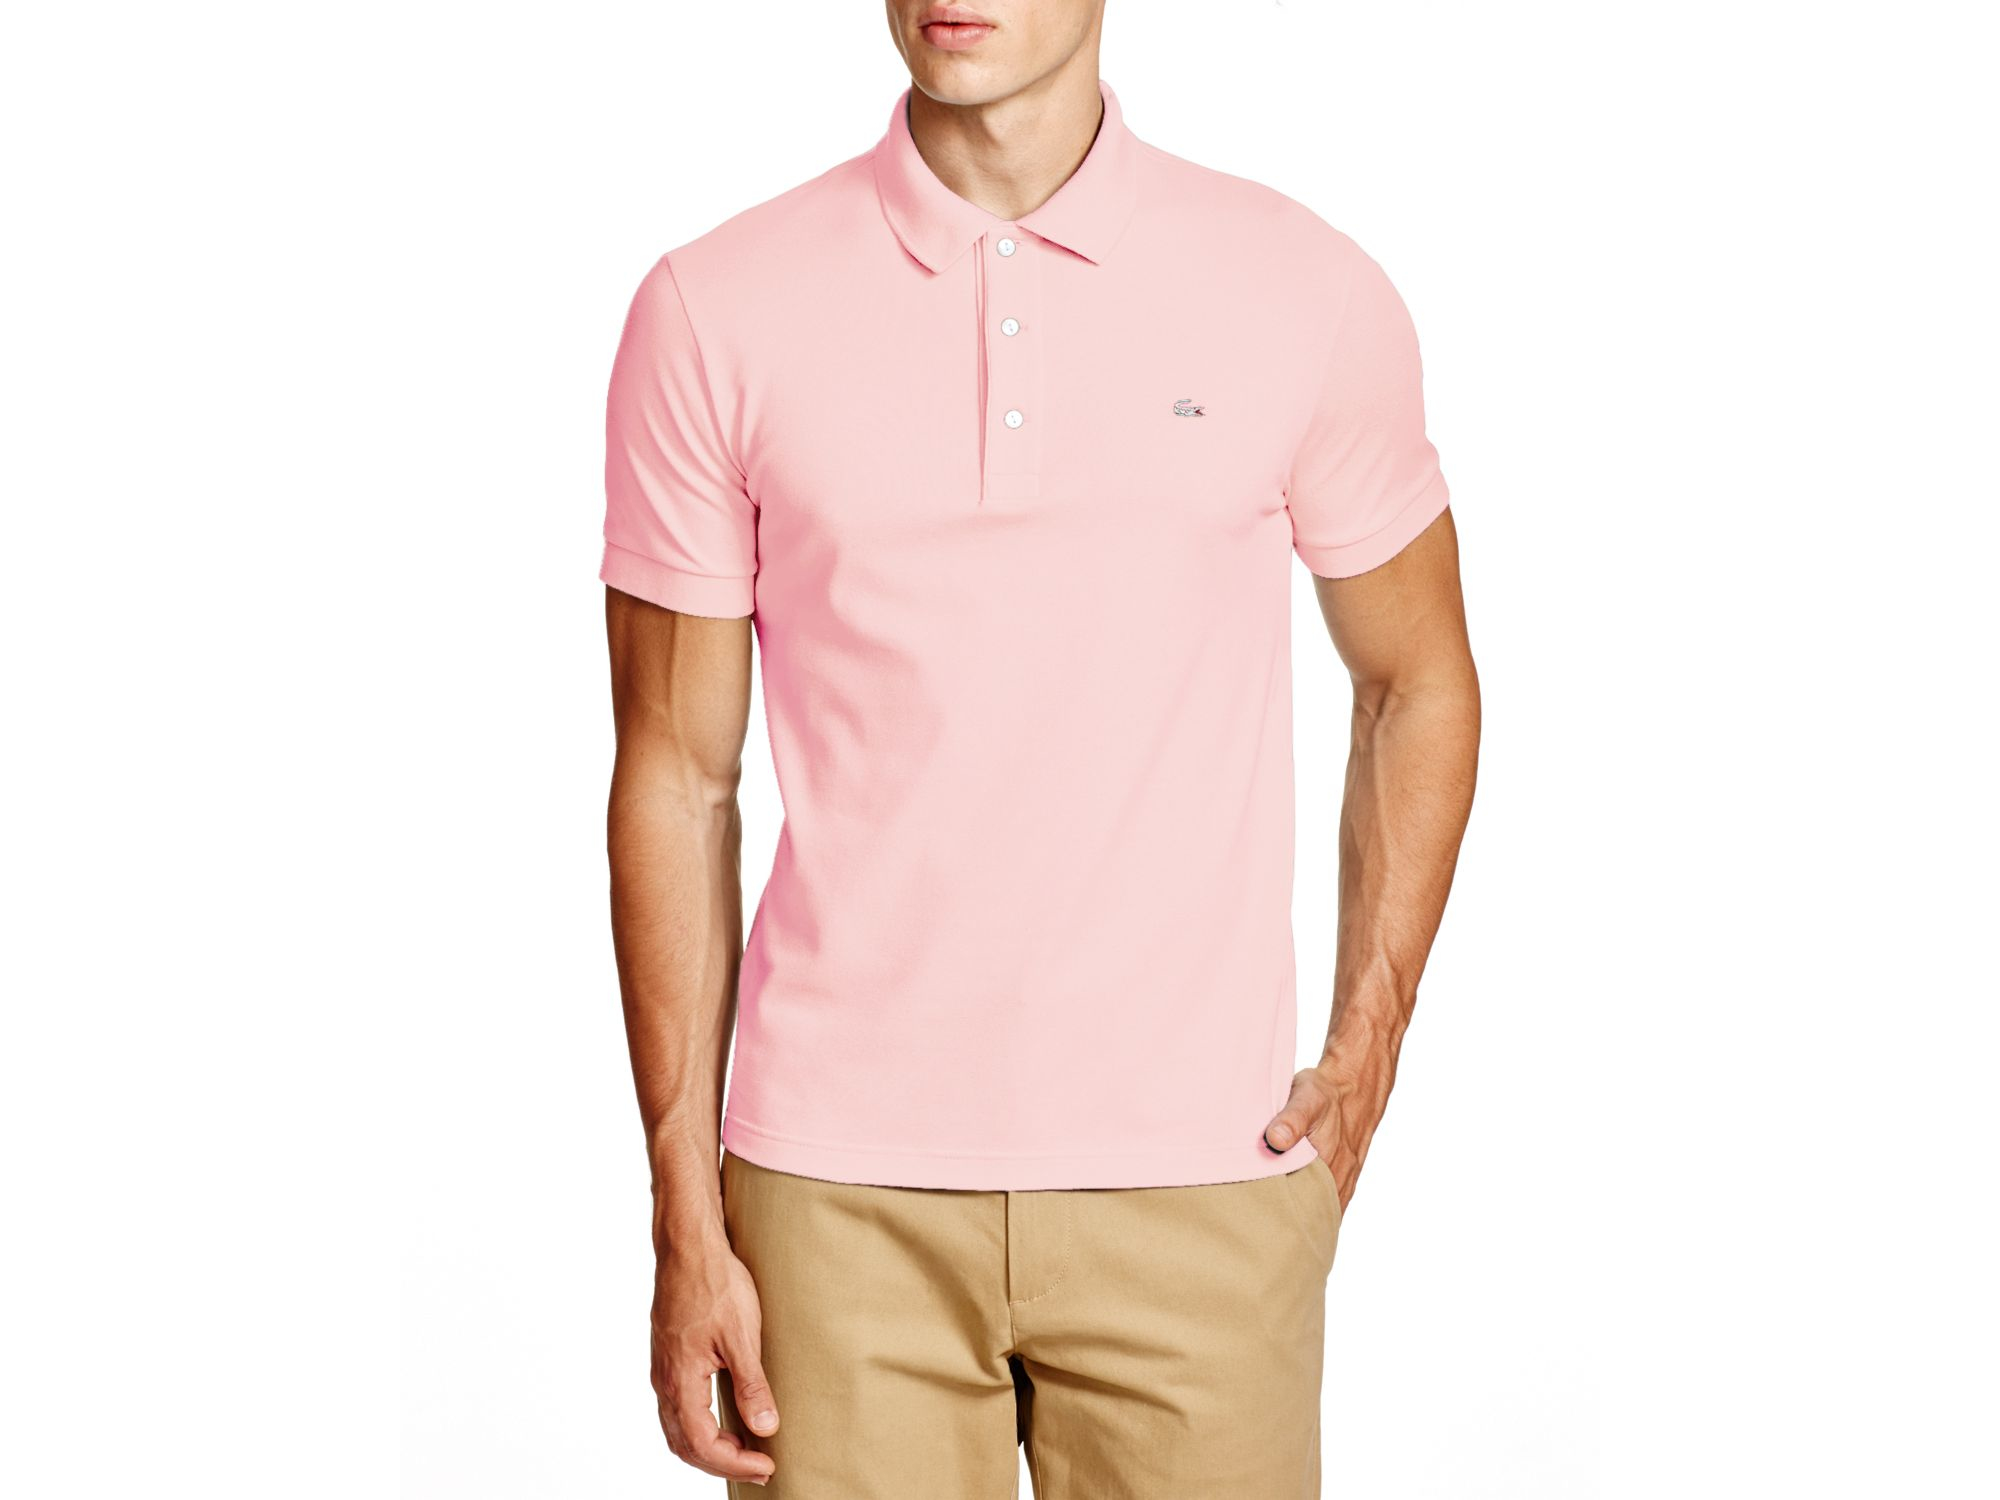 lacoste stretch slim fit polo in pink for men lyst. Black Bedroom Furniture Sets. Home Design Ideas